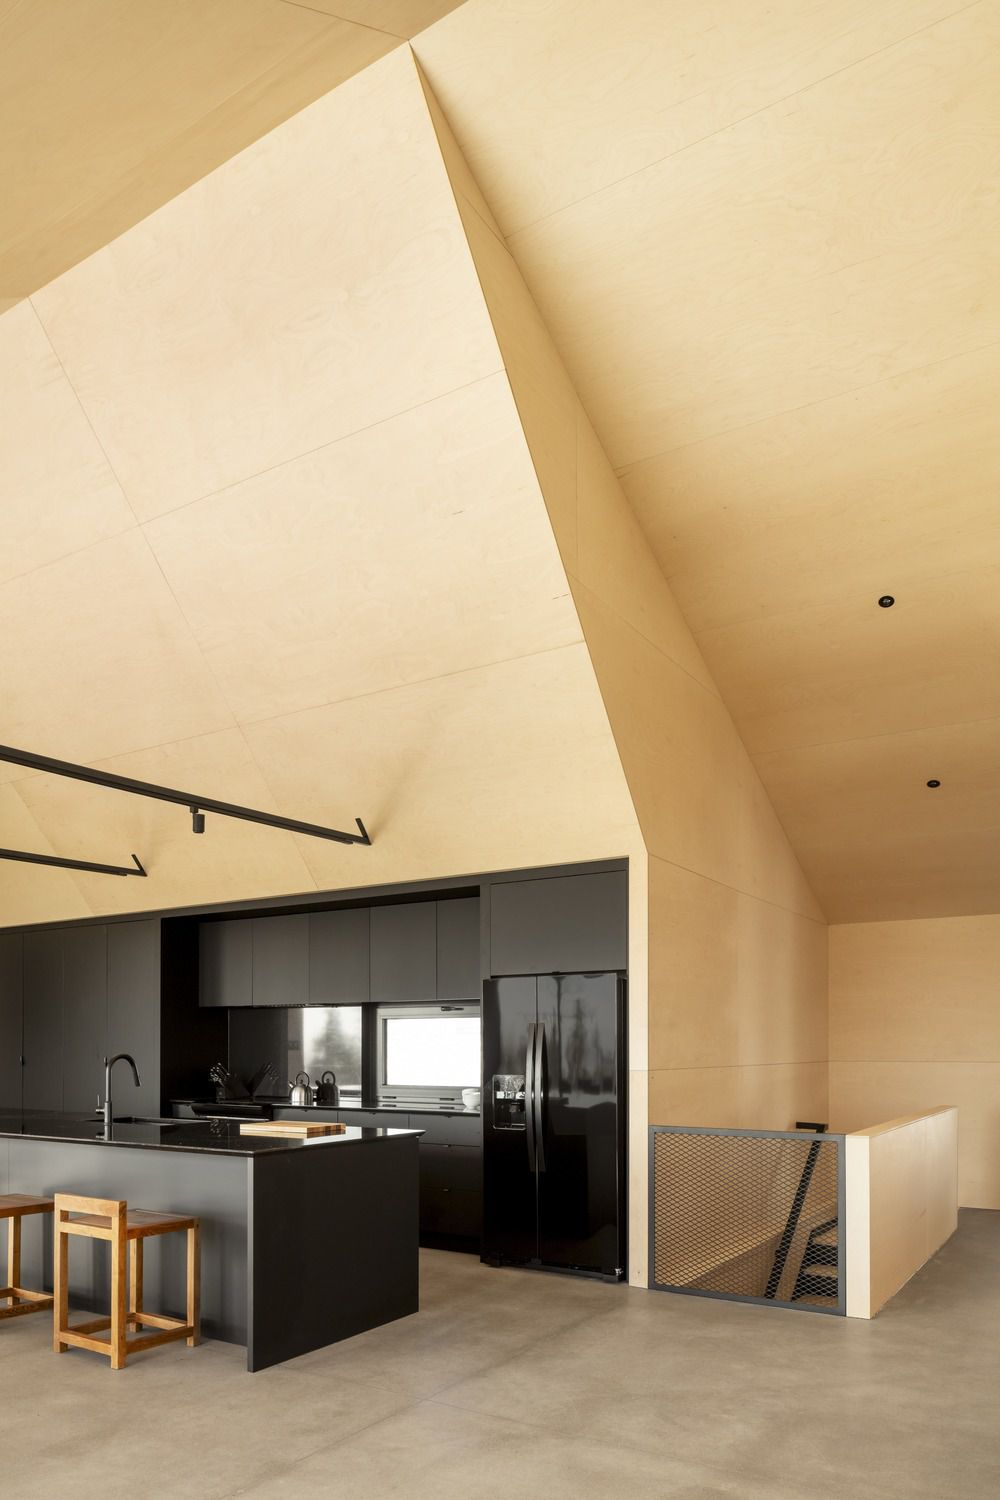 Black cabinets and plywood in kitchen under soaring angular ceilings.